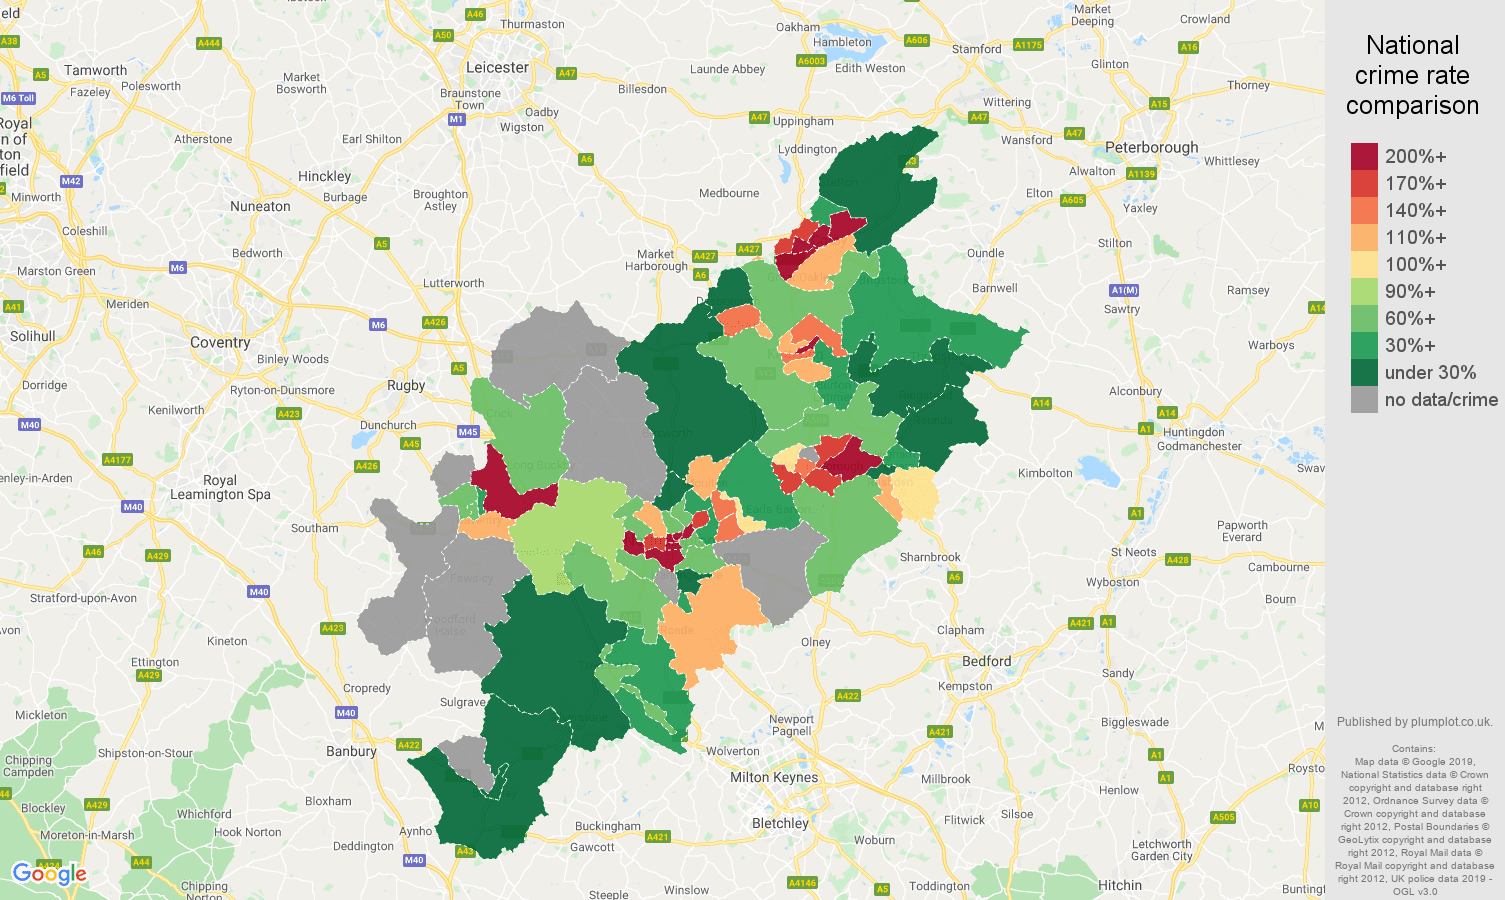 Northampton possession of weapons crime rate comparison map